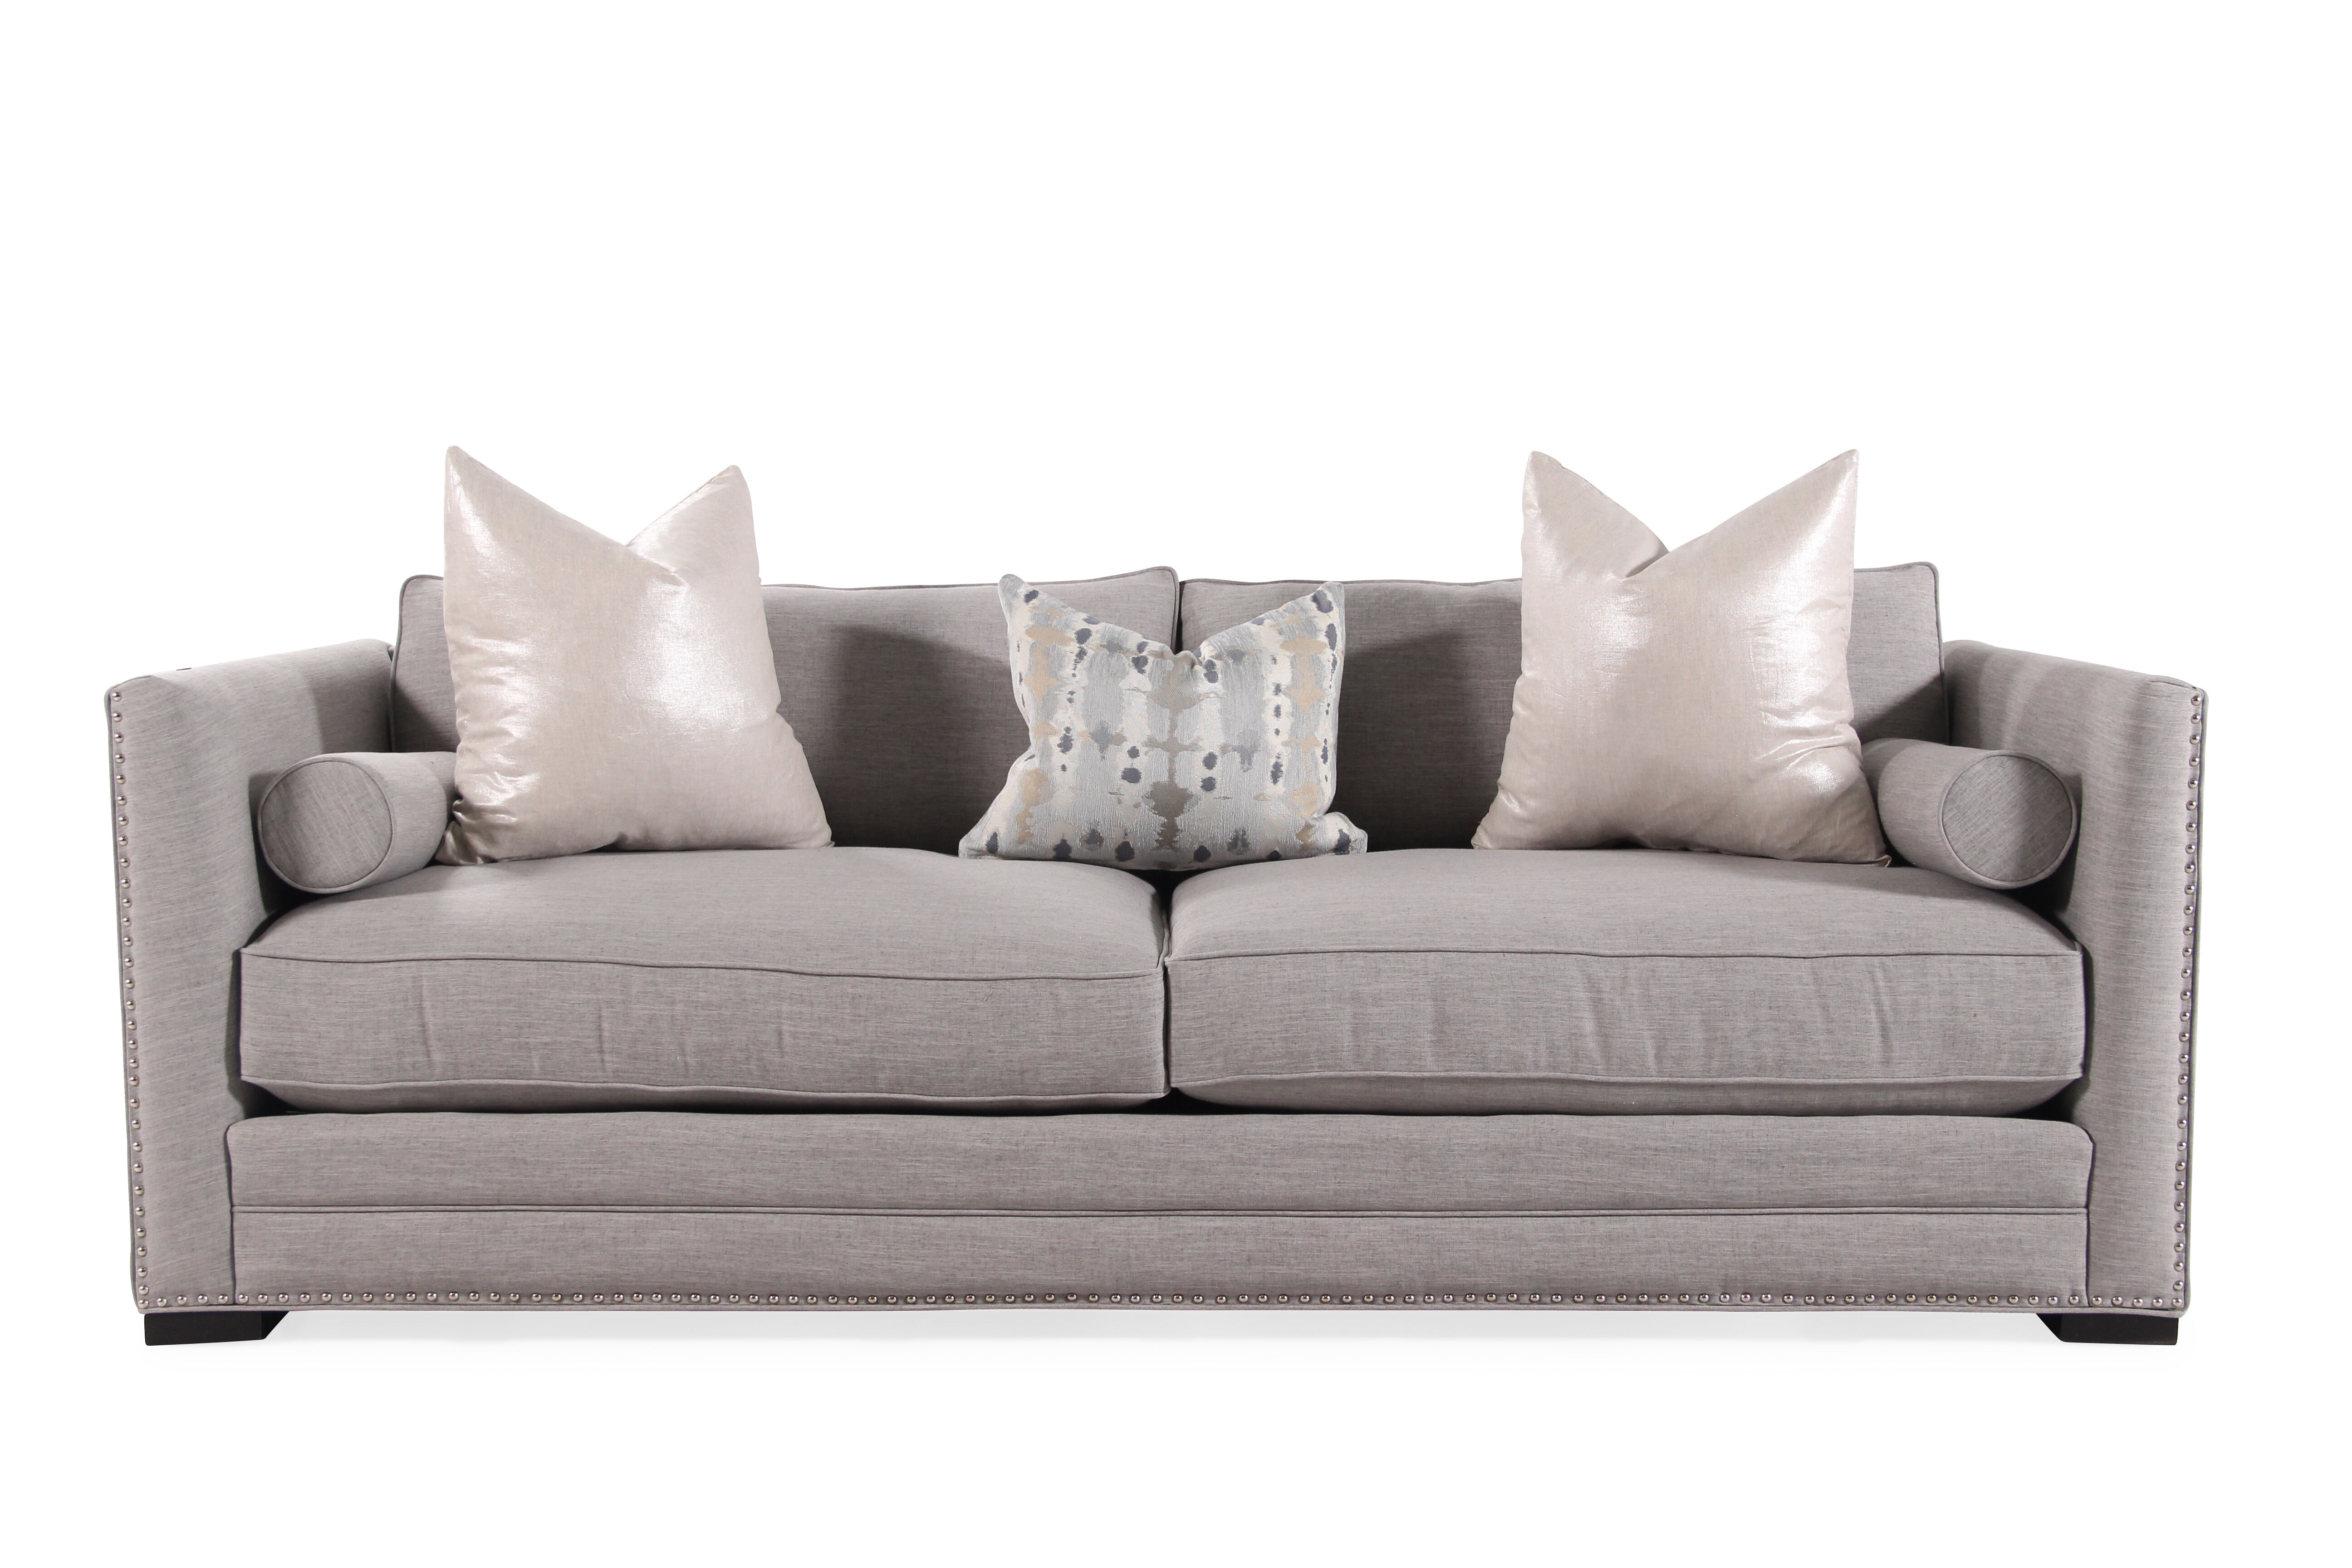 grey carleton nailhead sofa turner leather knockoff low profile accented 41 quot in oyster gray